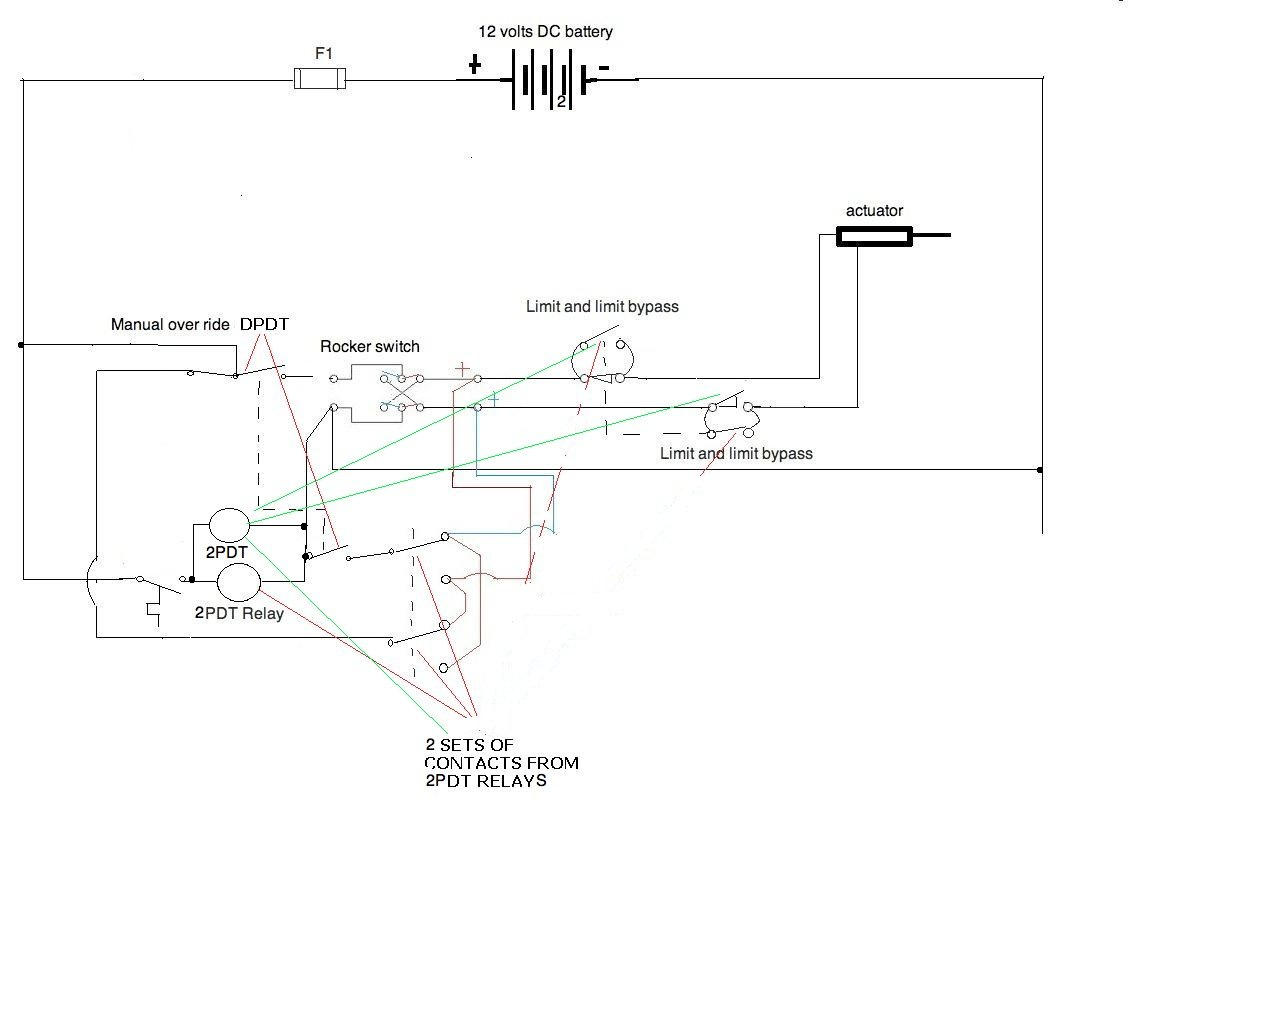 I Need A Wiring Diagram For 12v Application All Components Are Relays 12 Volt Graphic